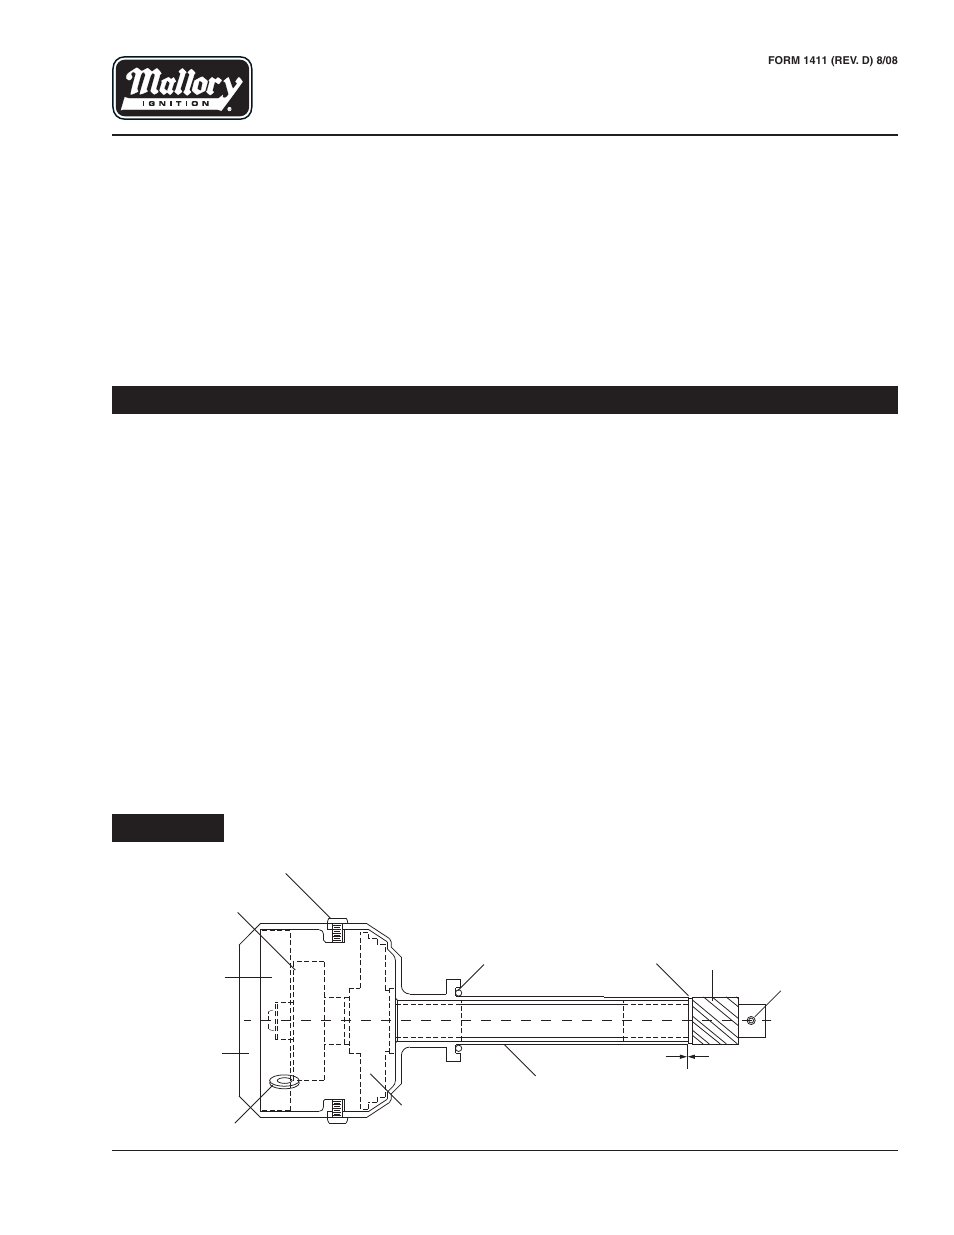 mallory ignition mallory unilite distributor a556 page1?resize\\\\\\\\\\\\\\\\\\\\\\\=665%2C861 astonishing mallory dual point distributor wiring diagram photos